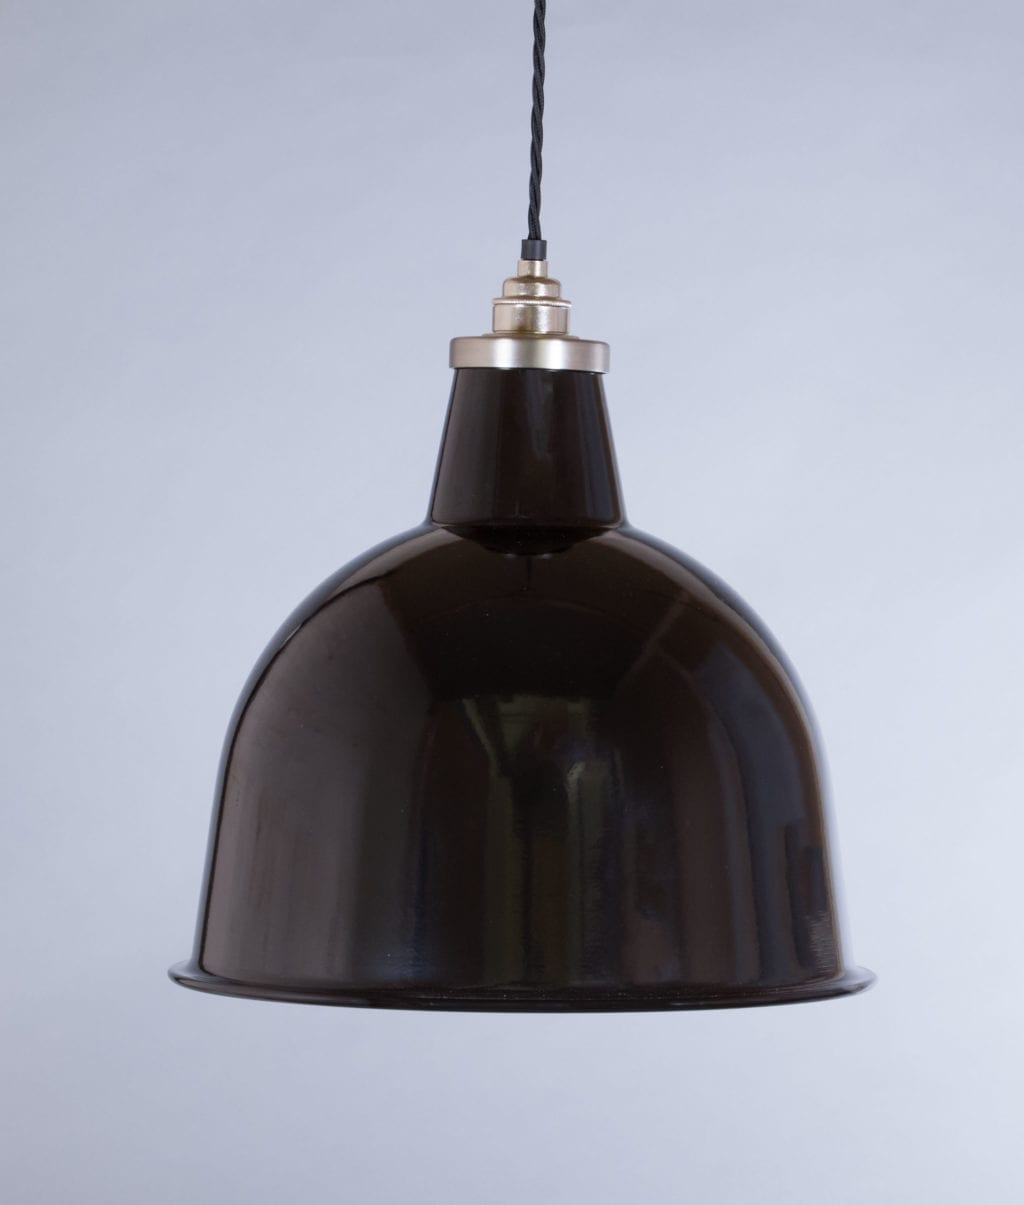 stourton black enamel metal pendant lights suspended from black fabric cable against grey wall